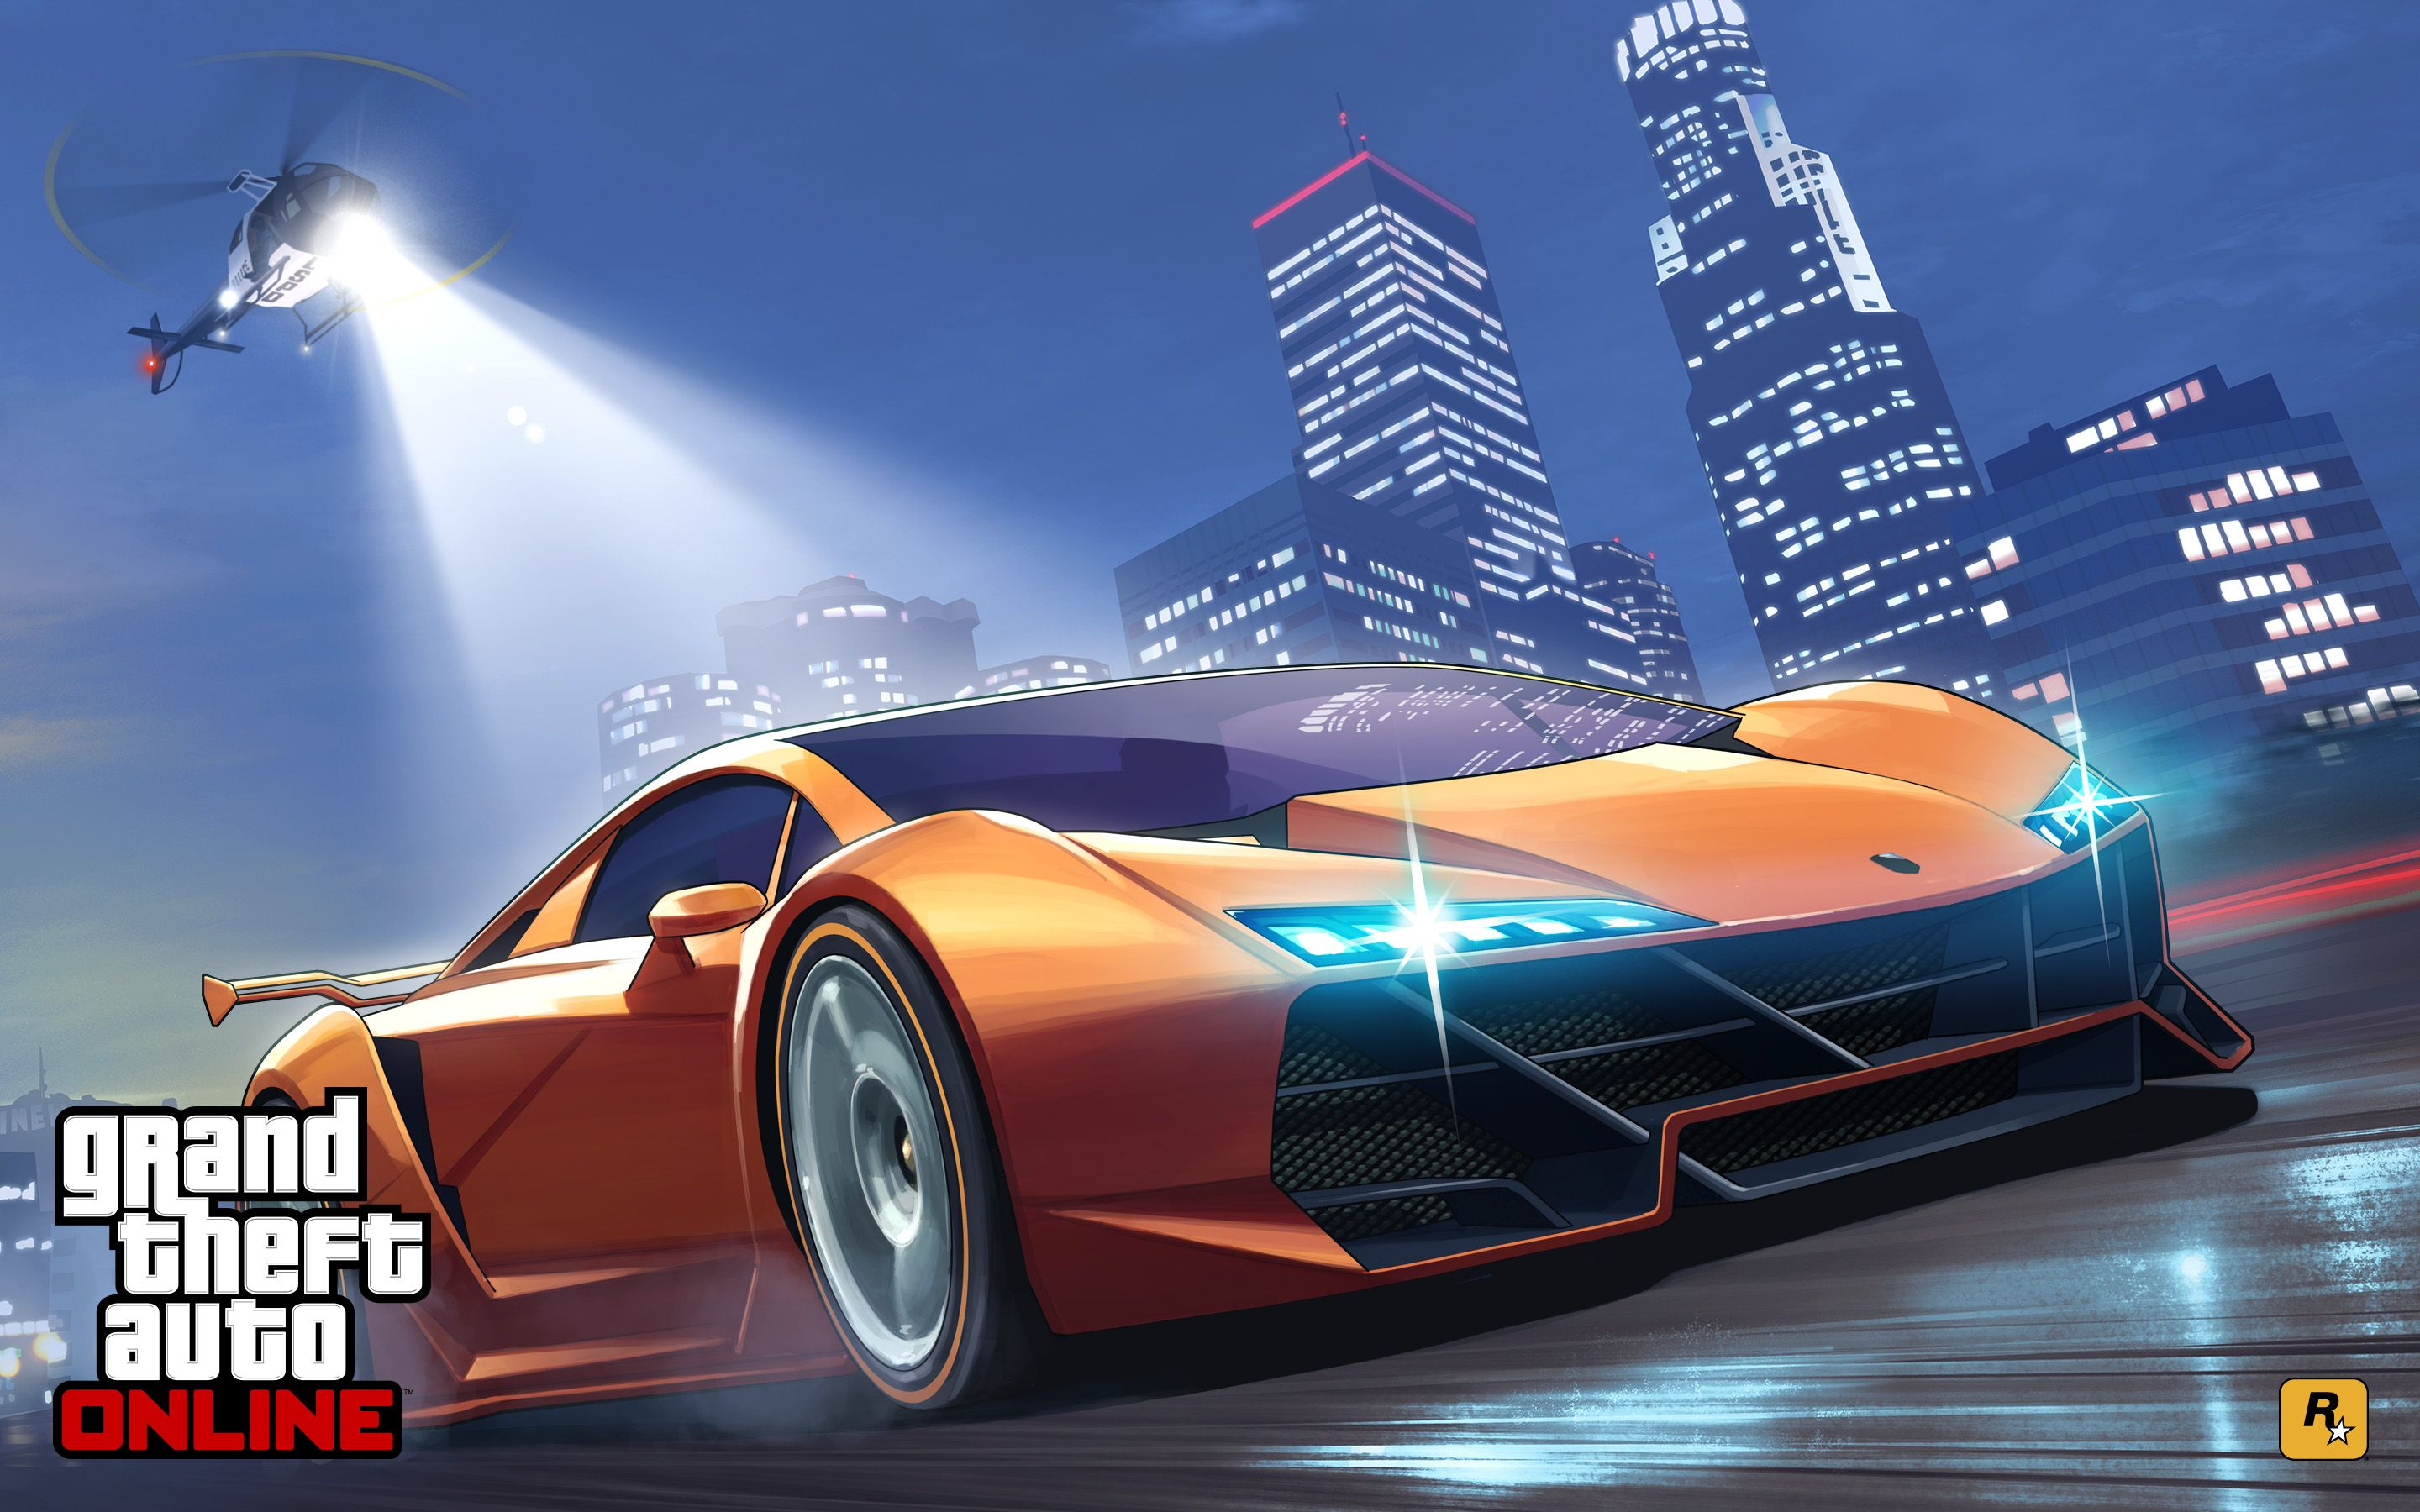 Grand Theft Auto Online 2015 Exclusive Wallpapers Hd Wallpapers Grand Theft Auto Gta Cars Grand Theft Auto Artwork